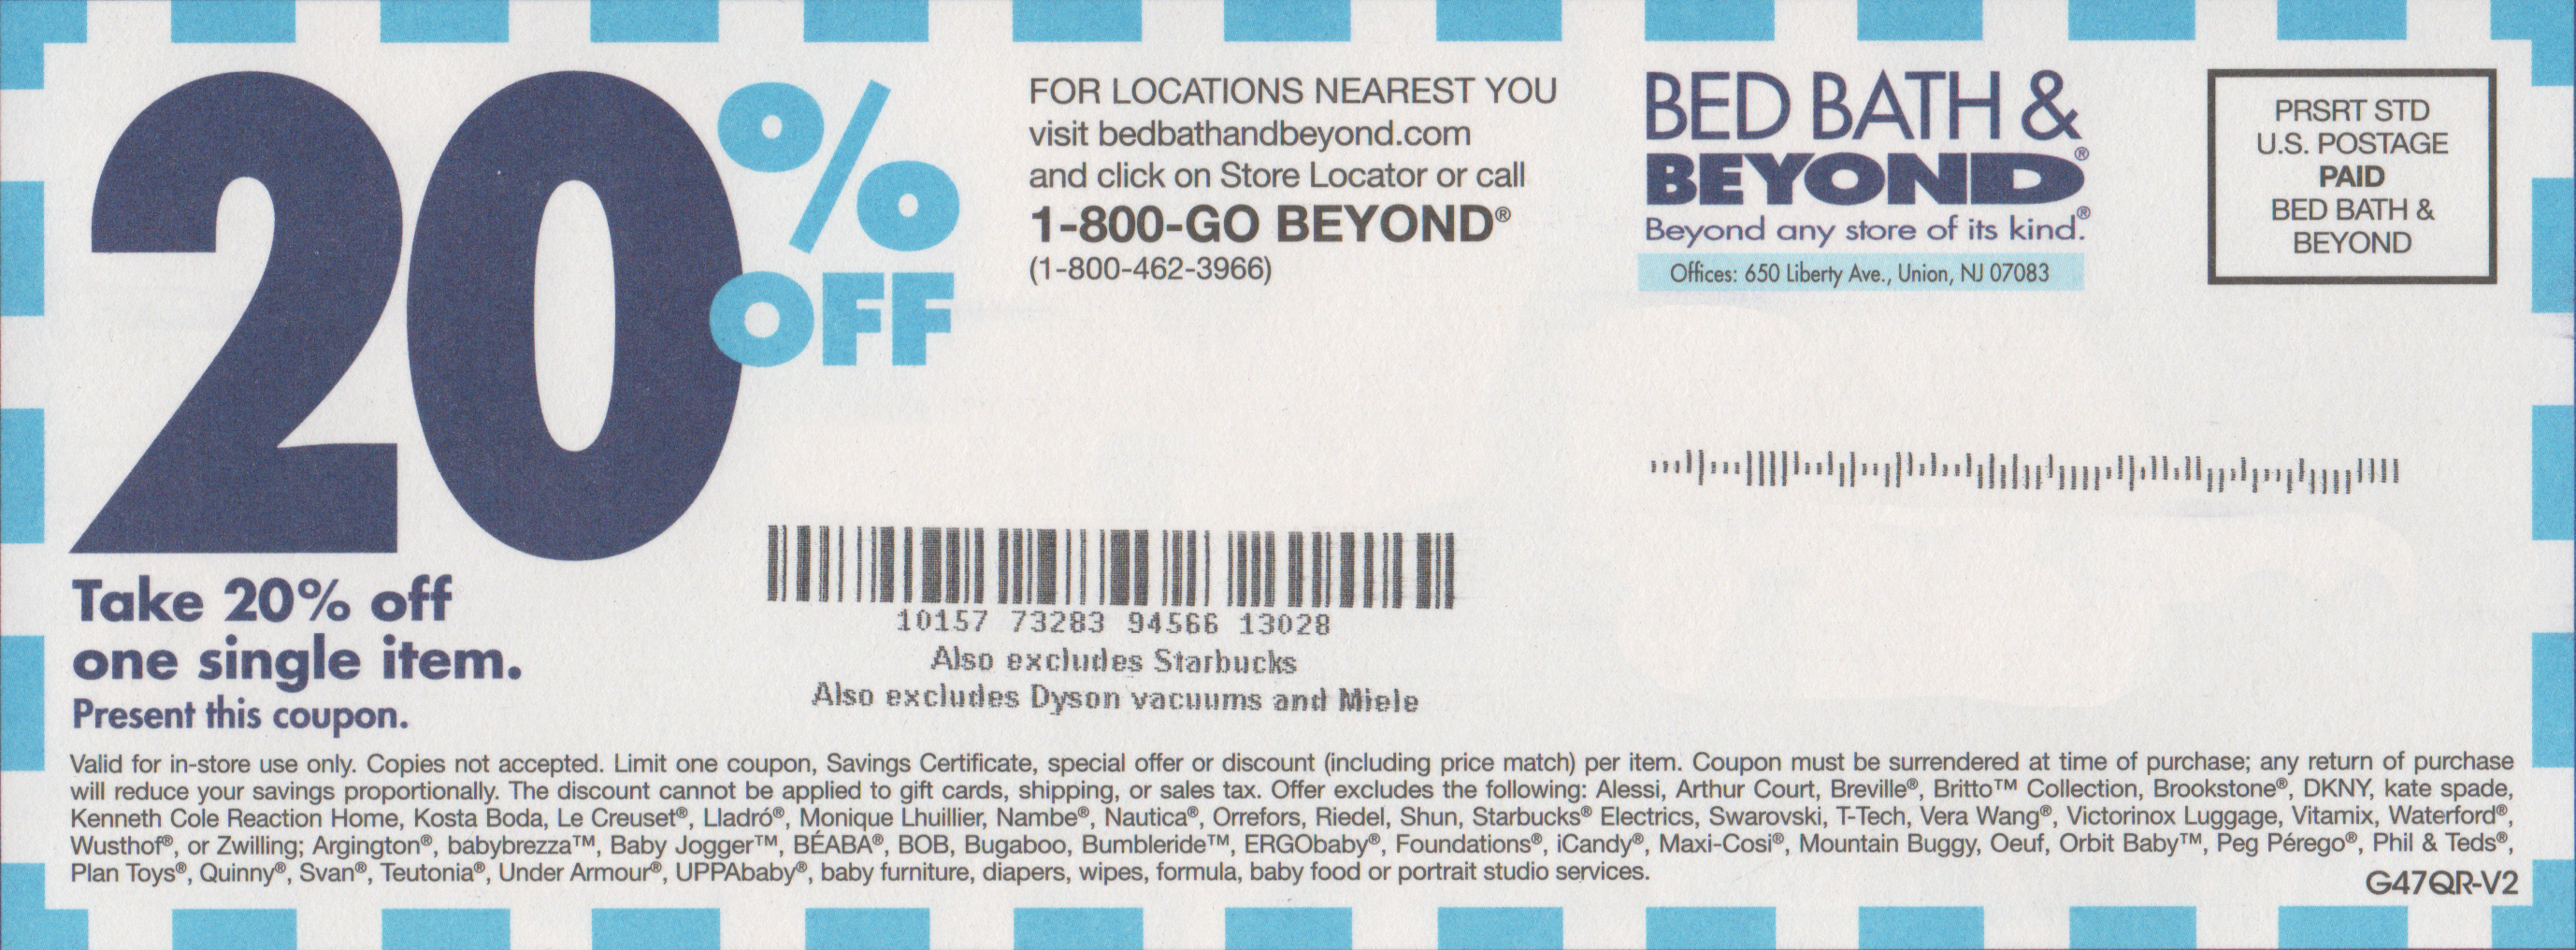 Here are the two coupons that have been Photoshopped to remove the